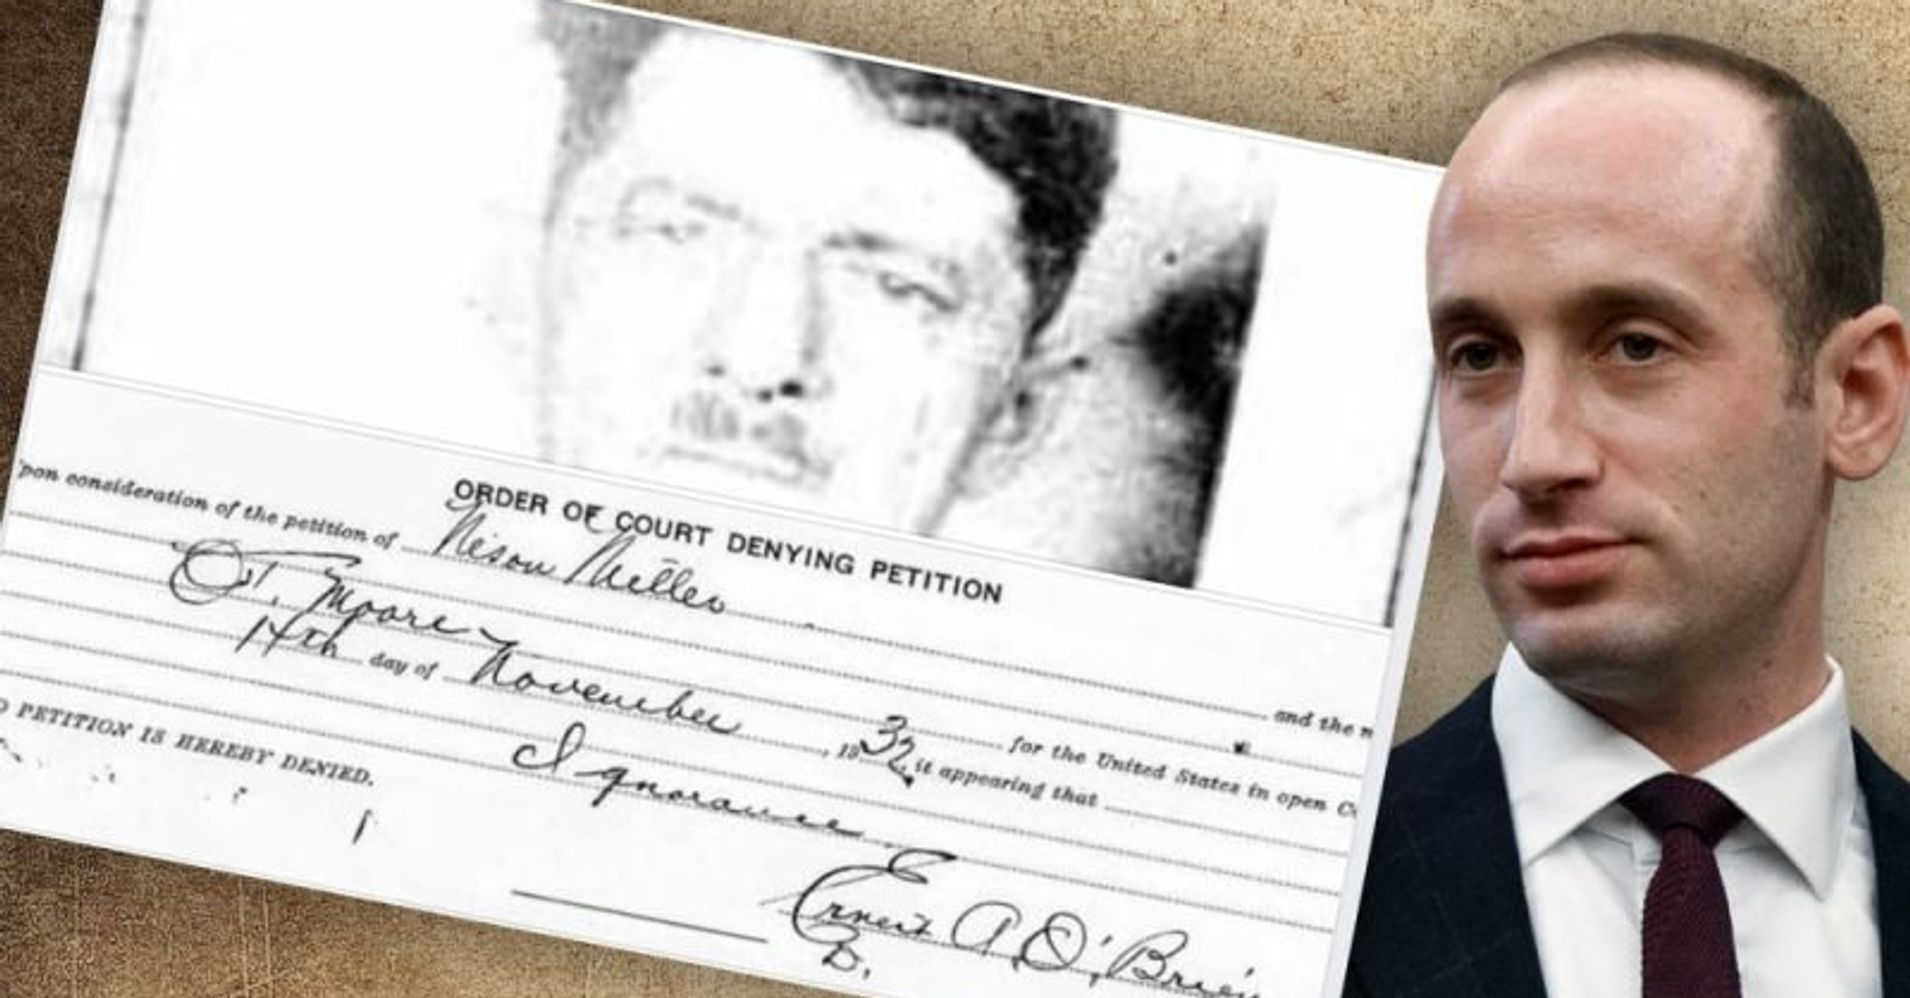 Trump Aide Stephen Miller, Meet Your Great-Grandfather, Who Flunked His Naturalization Test